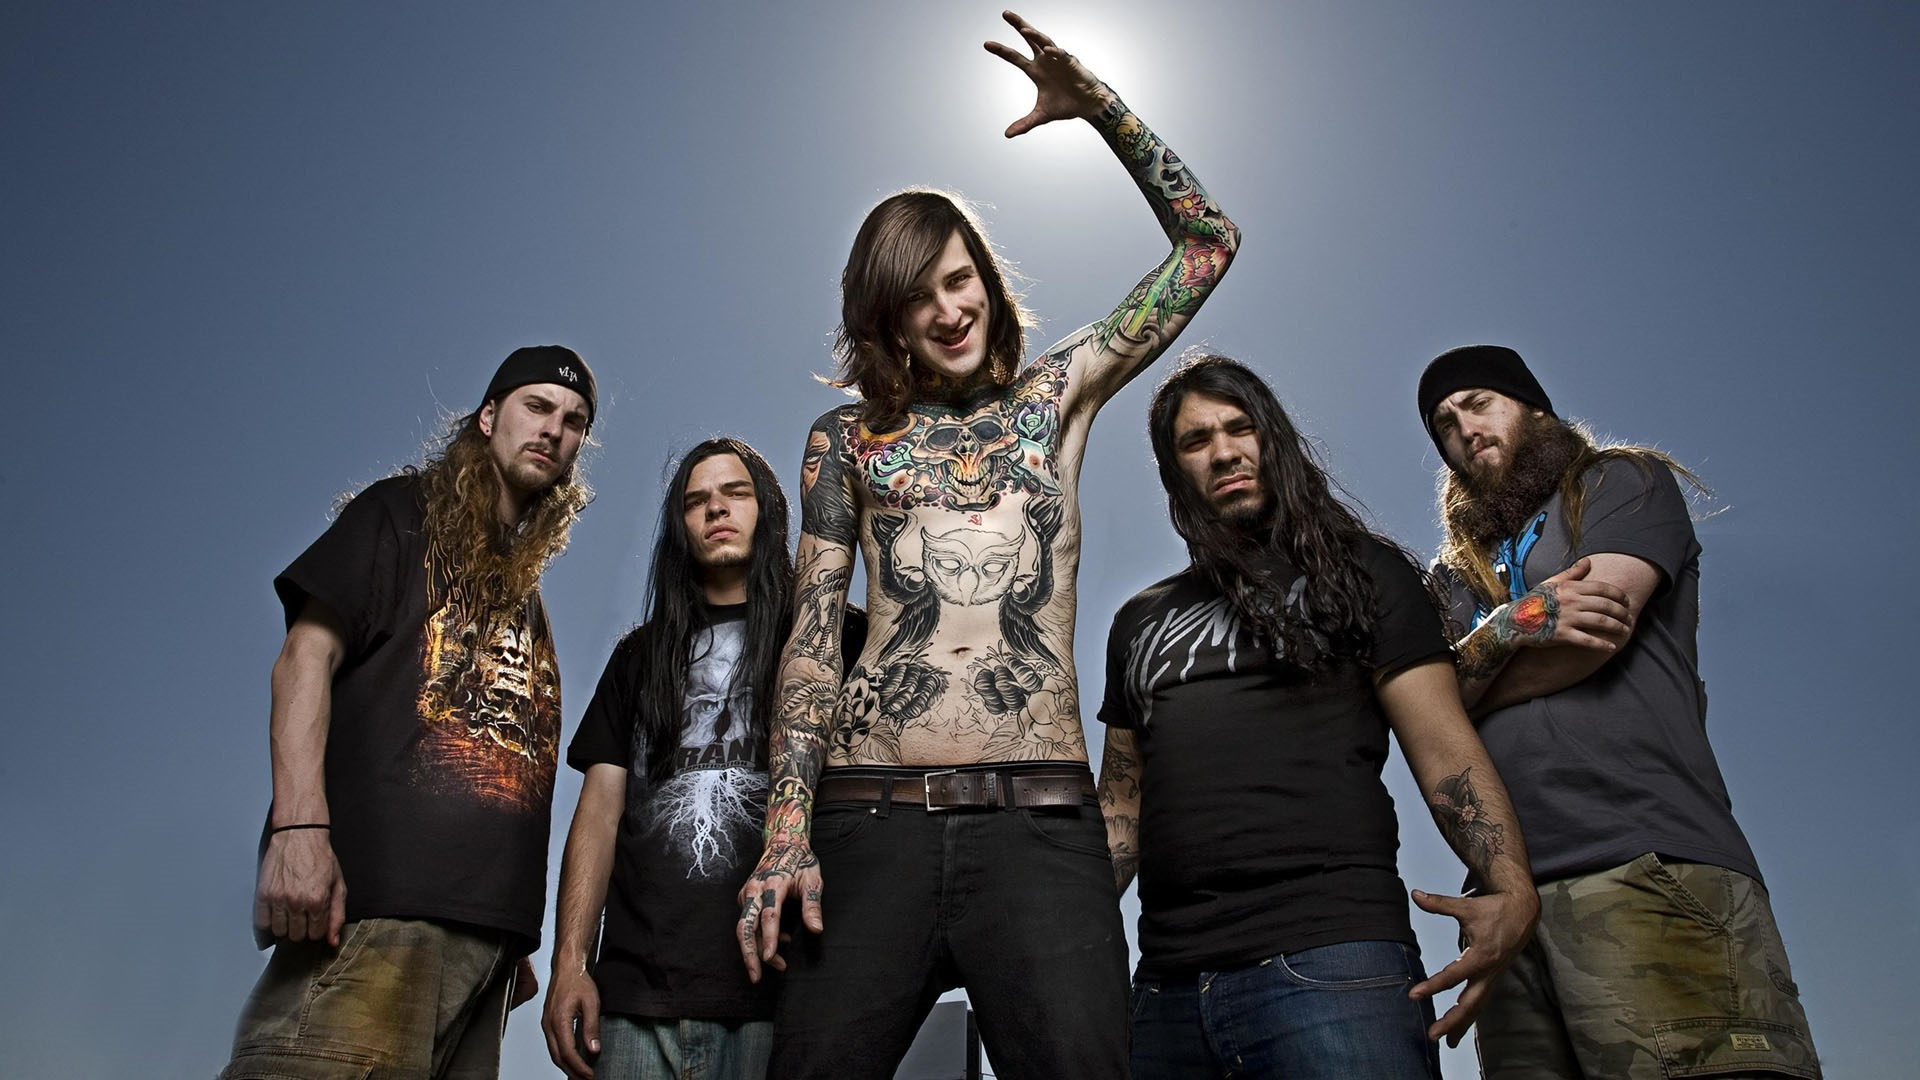 High Resolution Wallpaper | Suicide Silence 1920x1080 px